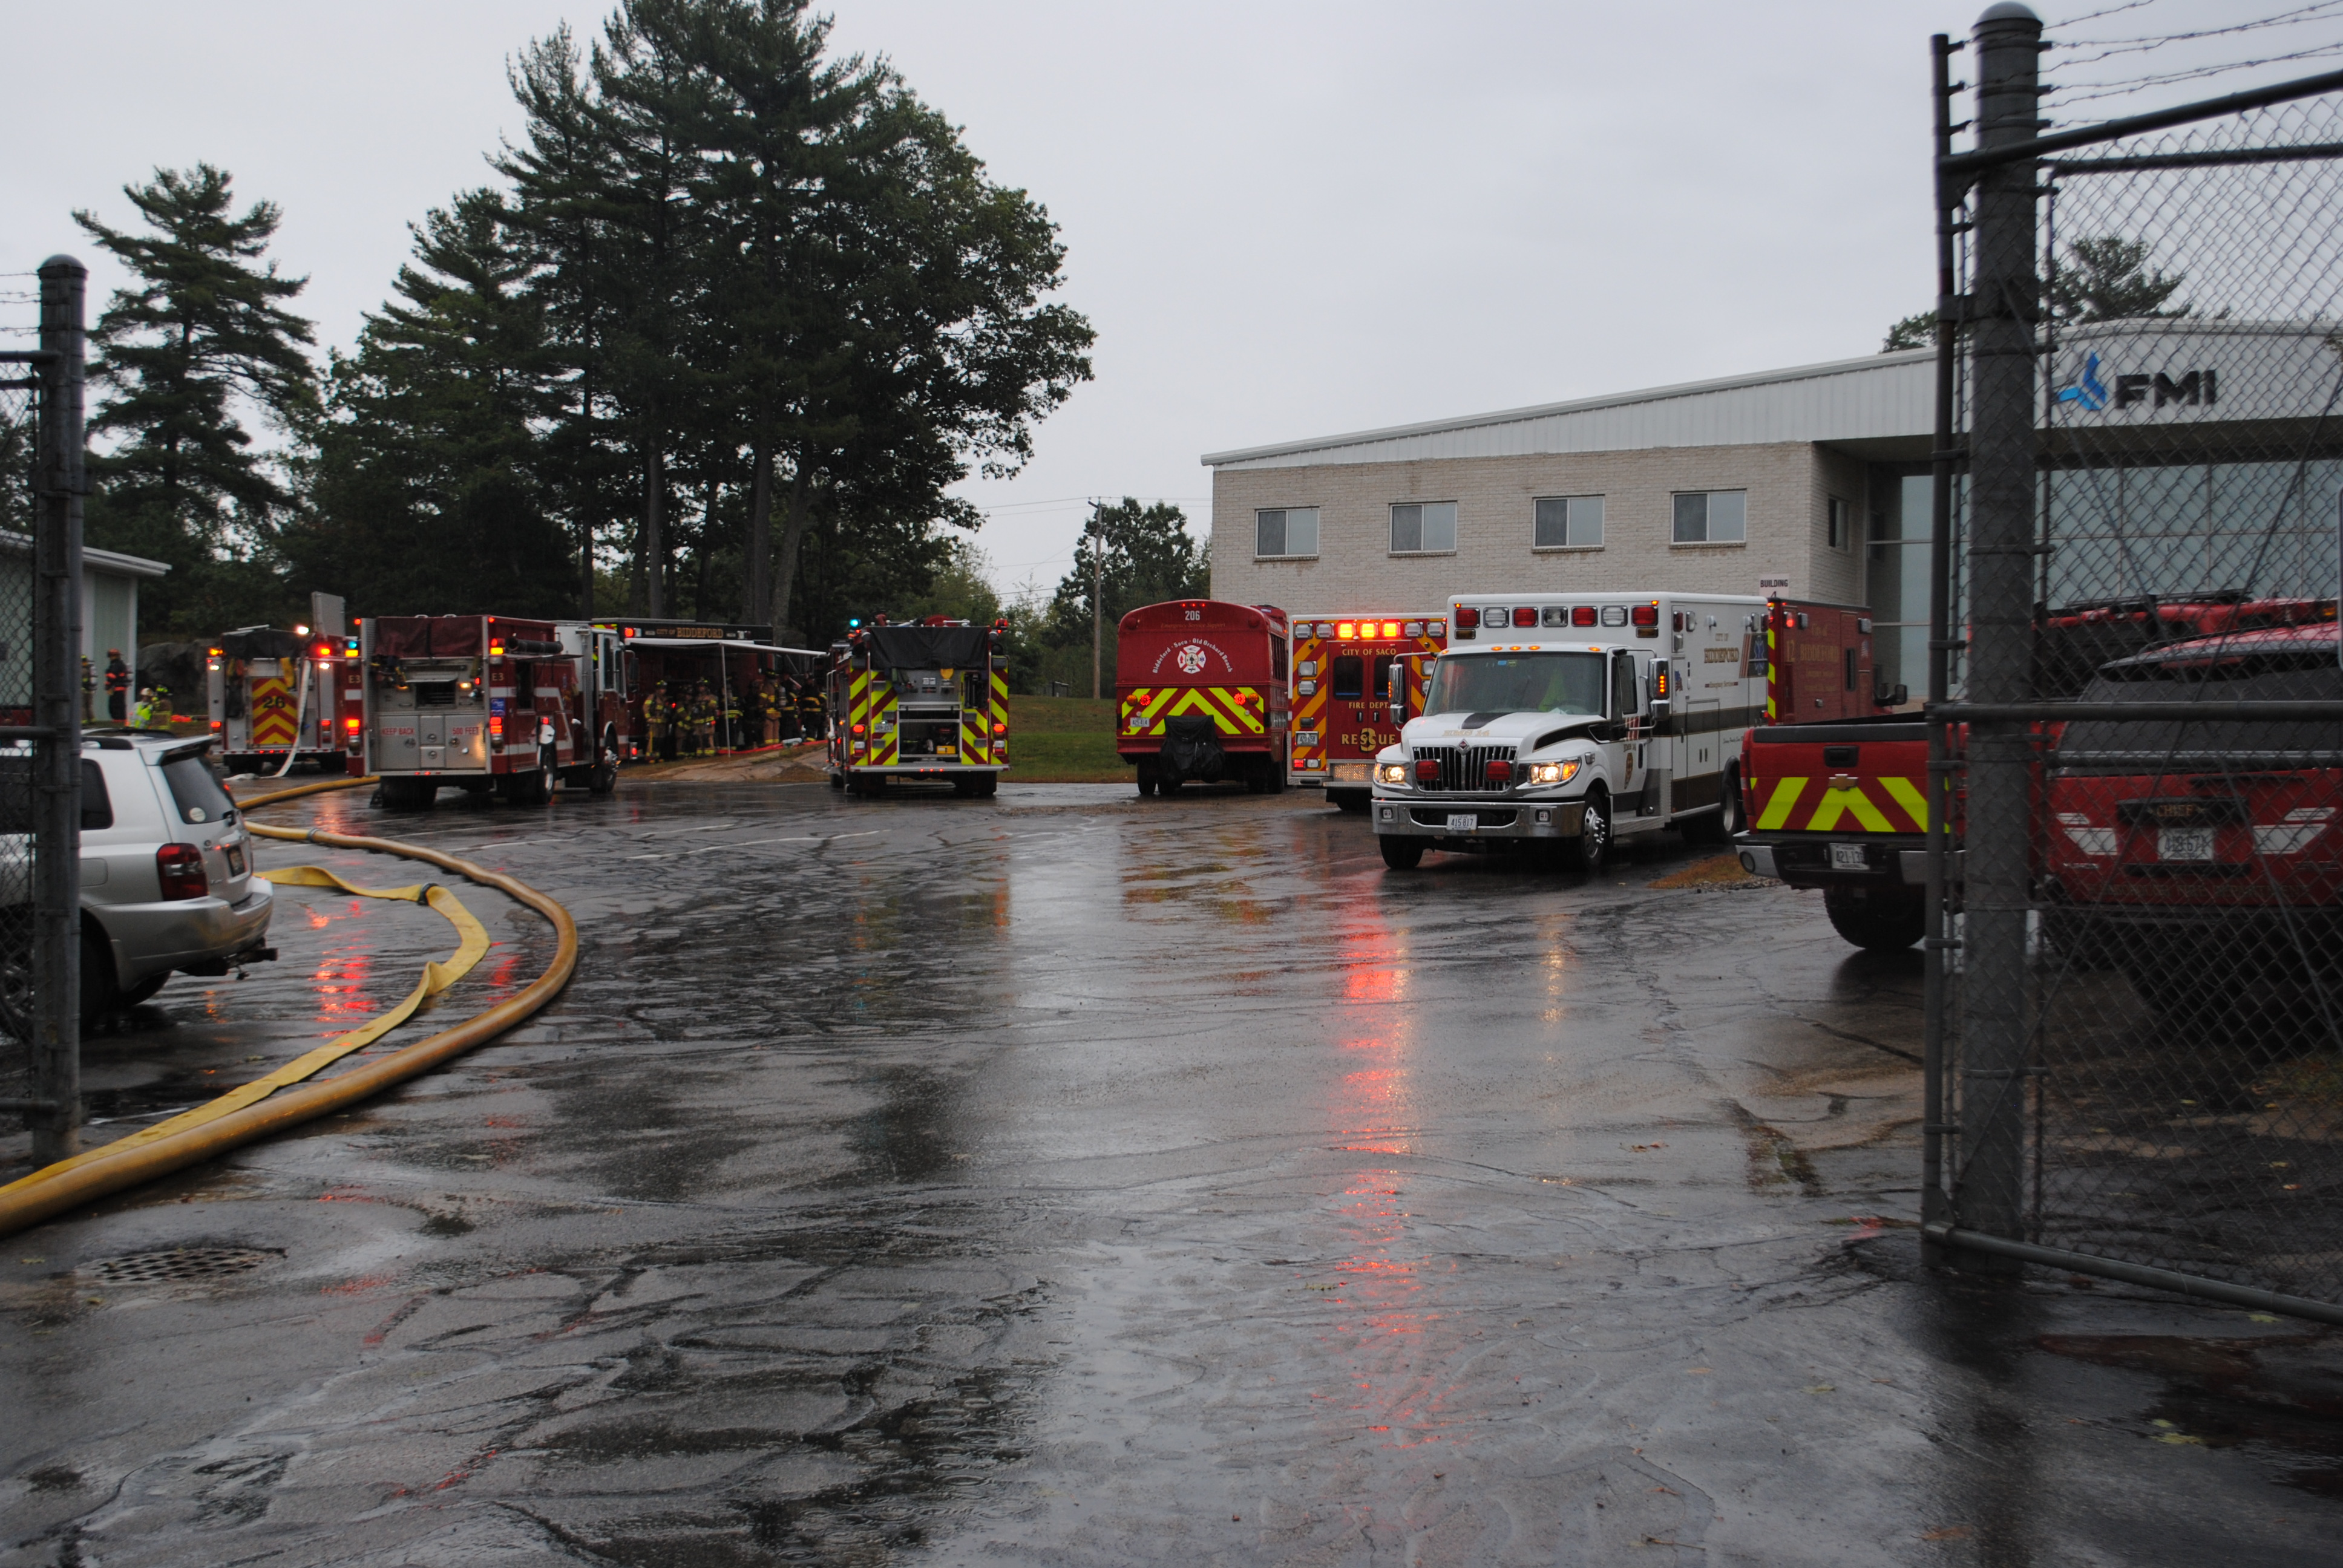 Firefighters respond to a fire at Fiber Materials, Inc. at 5 Morin St. in Biddeford on Saturday morning. LIZ GOTTHELF/Journal Tribune